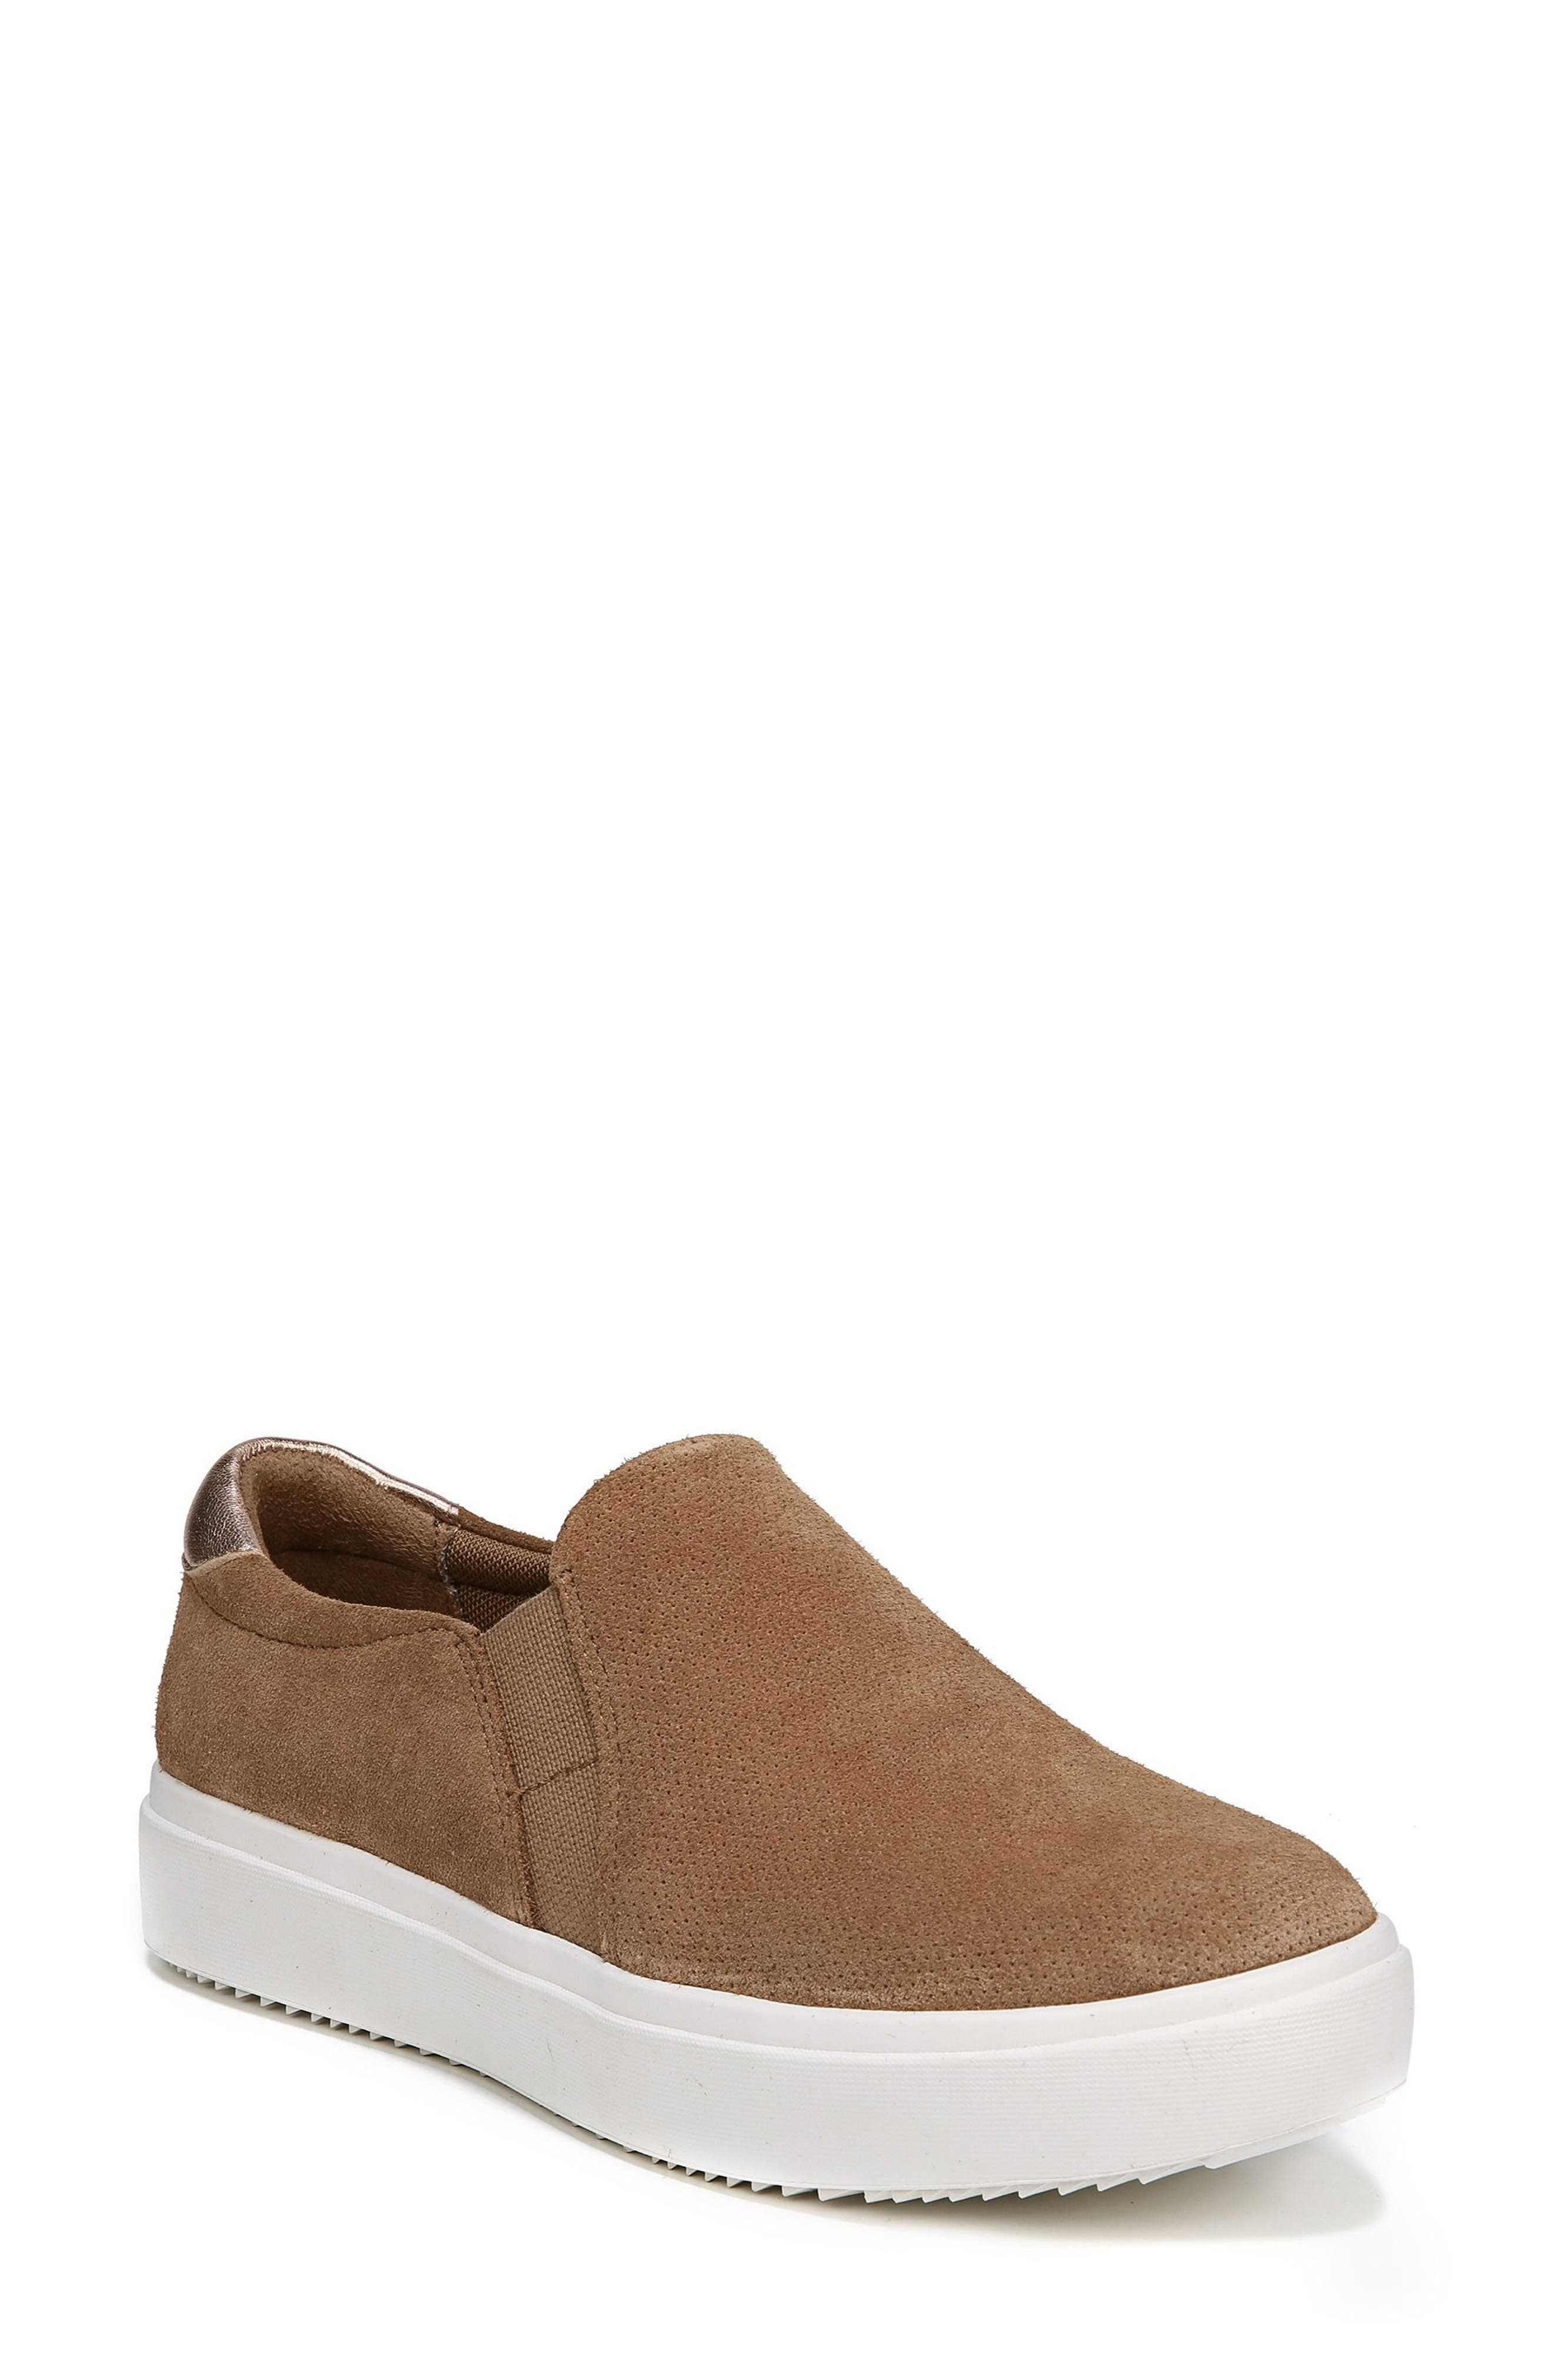 Charlie's Sneakers Brown Casual Shoes cheap sale outlet store 9ya0Oky1iG